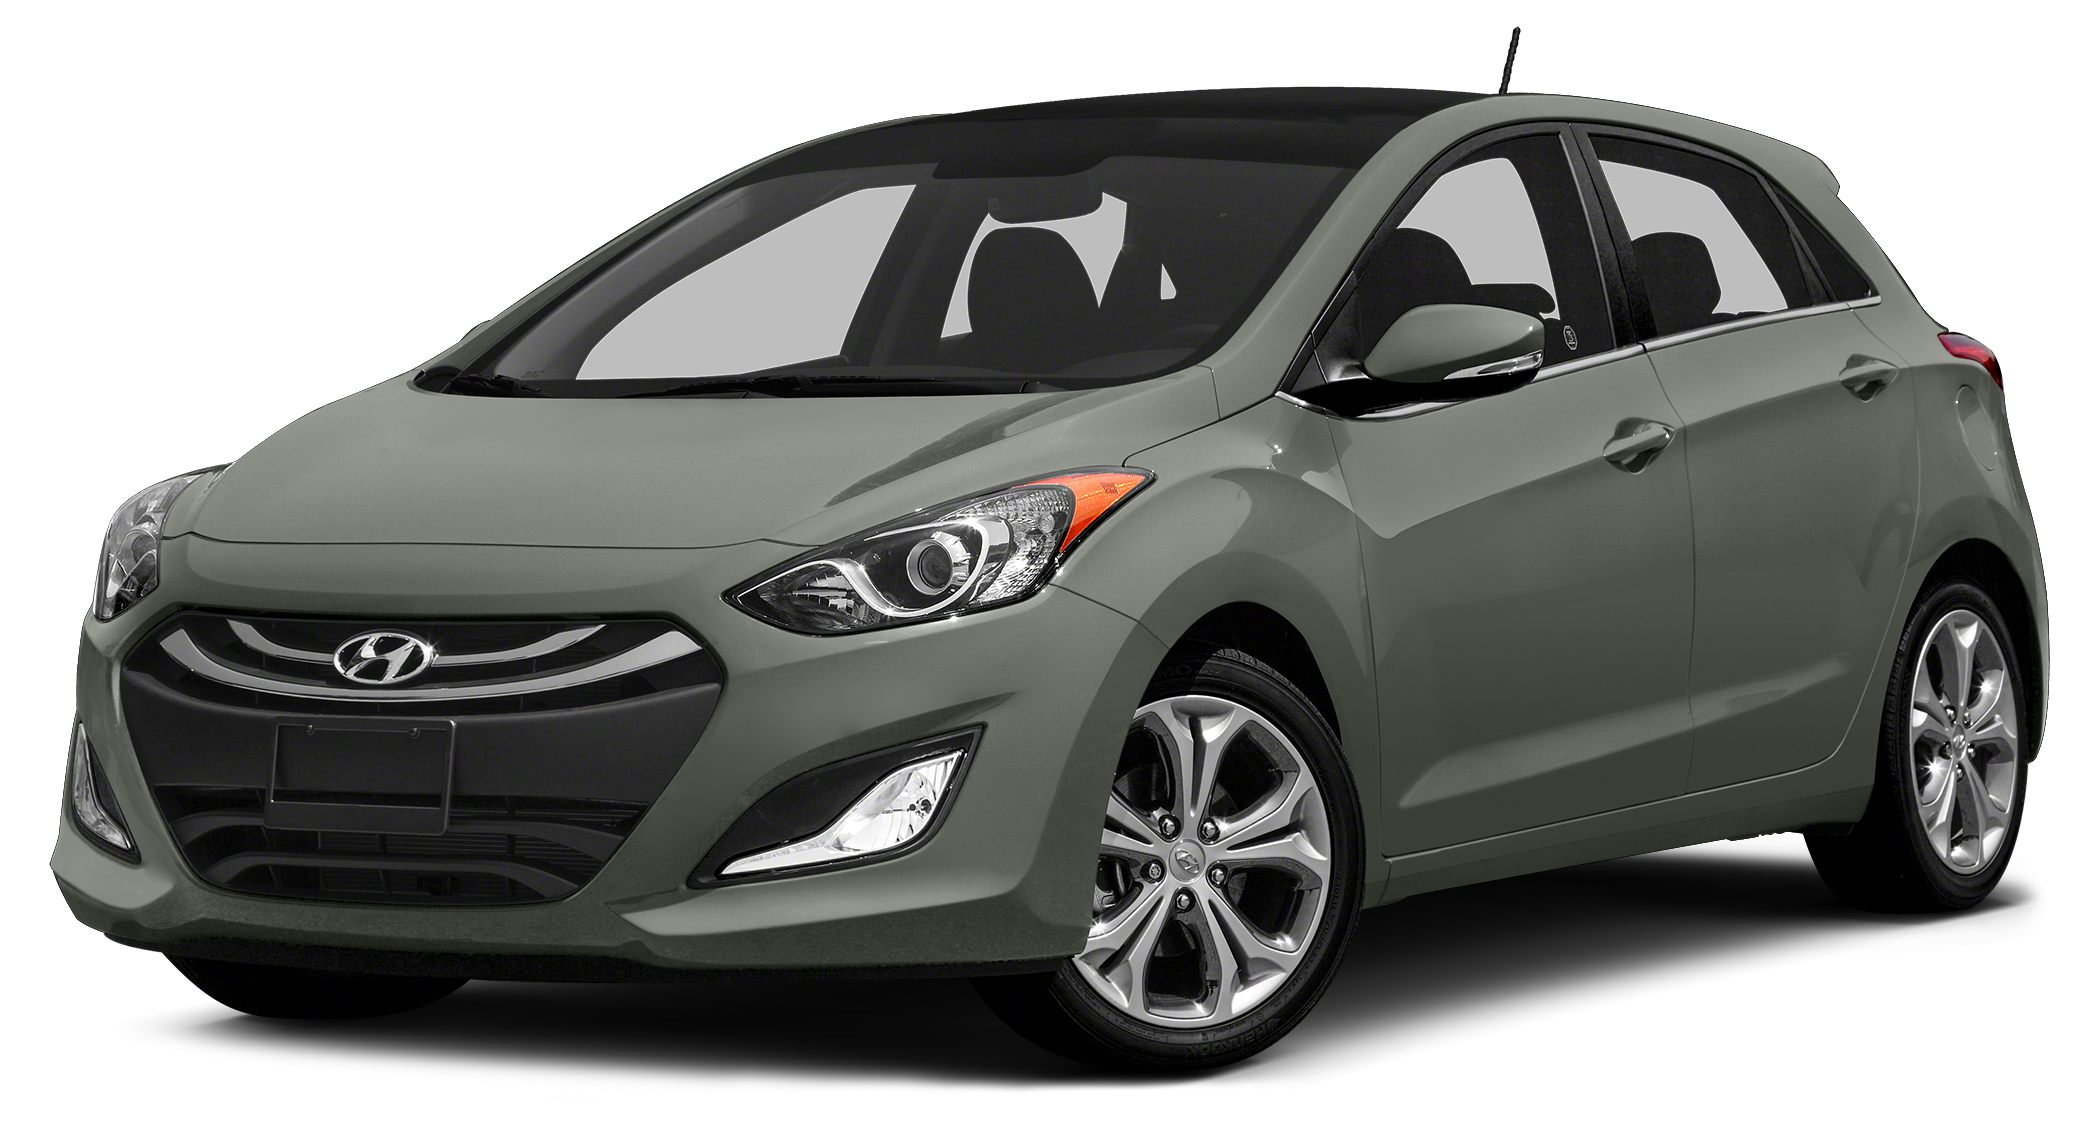 2013 Hyundai Elantra GT Base Hyundai Certified and a PERFECT one owner Car Fax Youll get remote